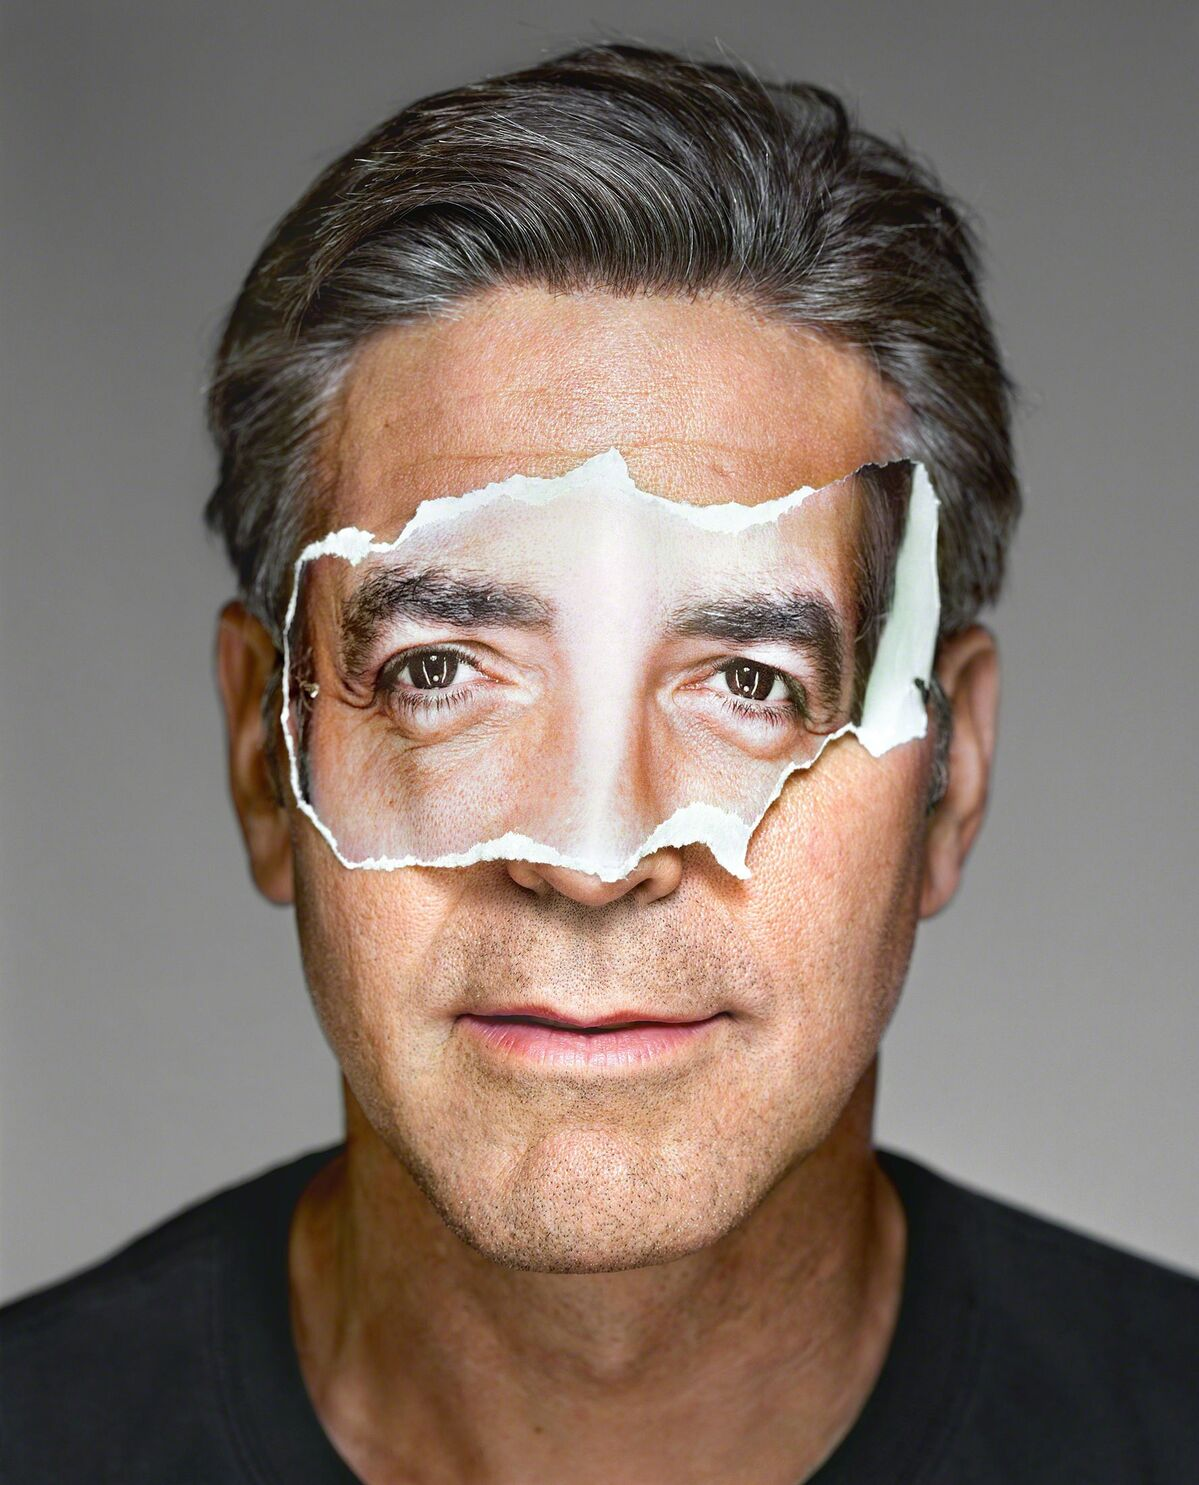 George Clooney photos by Martin Schoeller for sale ?resize_to=fit&width=1200&height=1485&quality=80&src=https%3A%2F%2Fd32dm0rphc51dk.cloudfront.net%2FjZmB1S1ihJHRkCSTAjQyBA%2Fnormalized